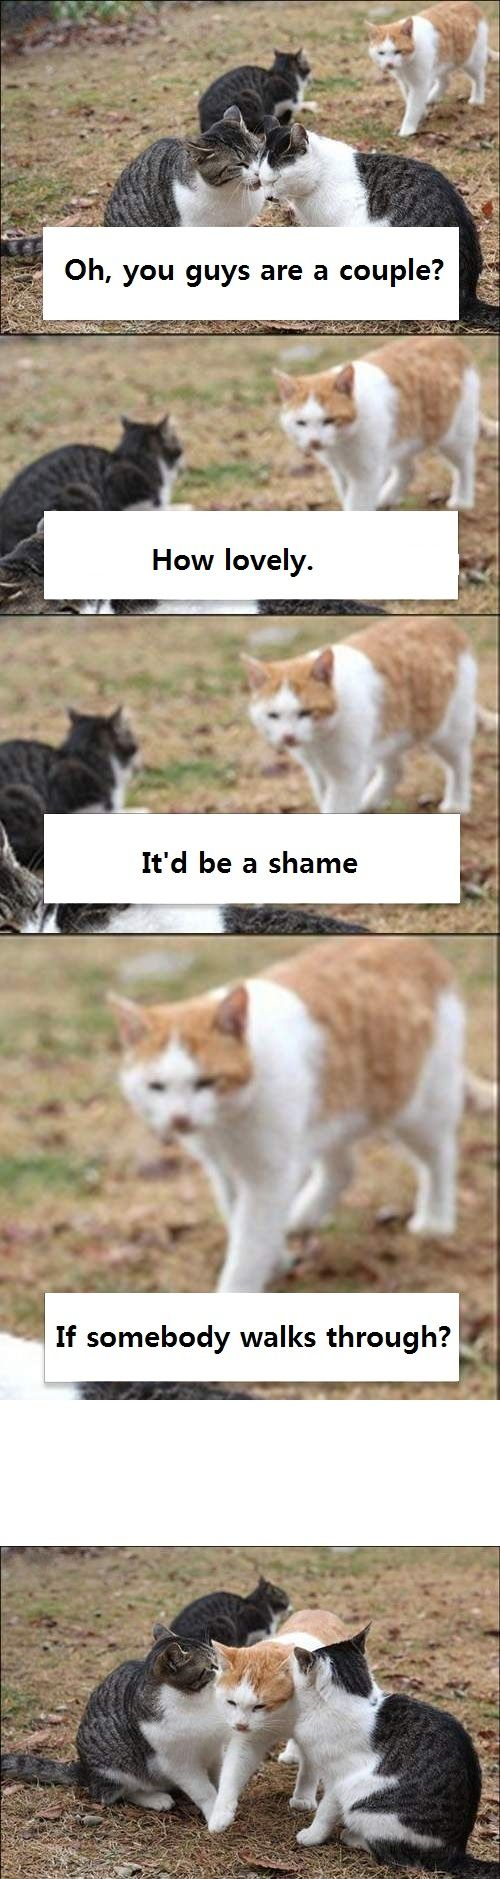 Some cats are very, very jealous xD